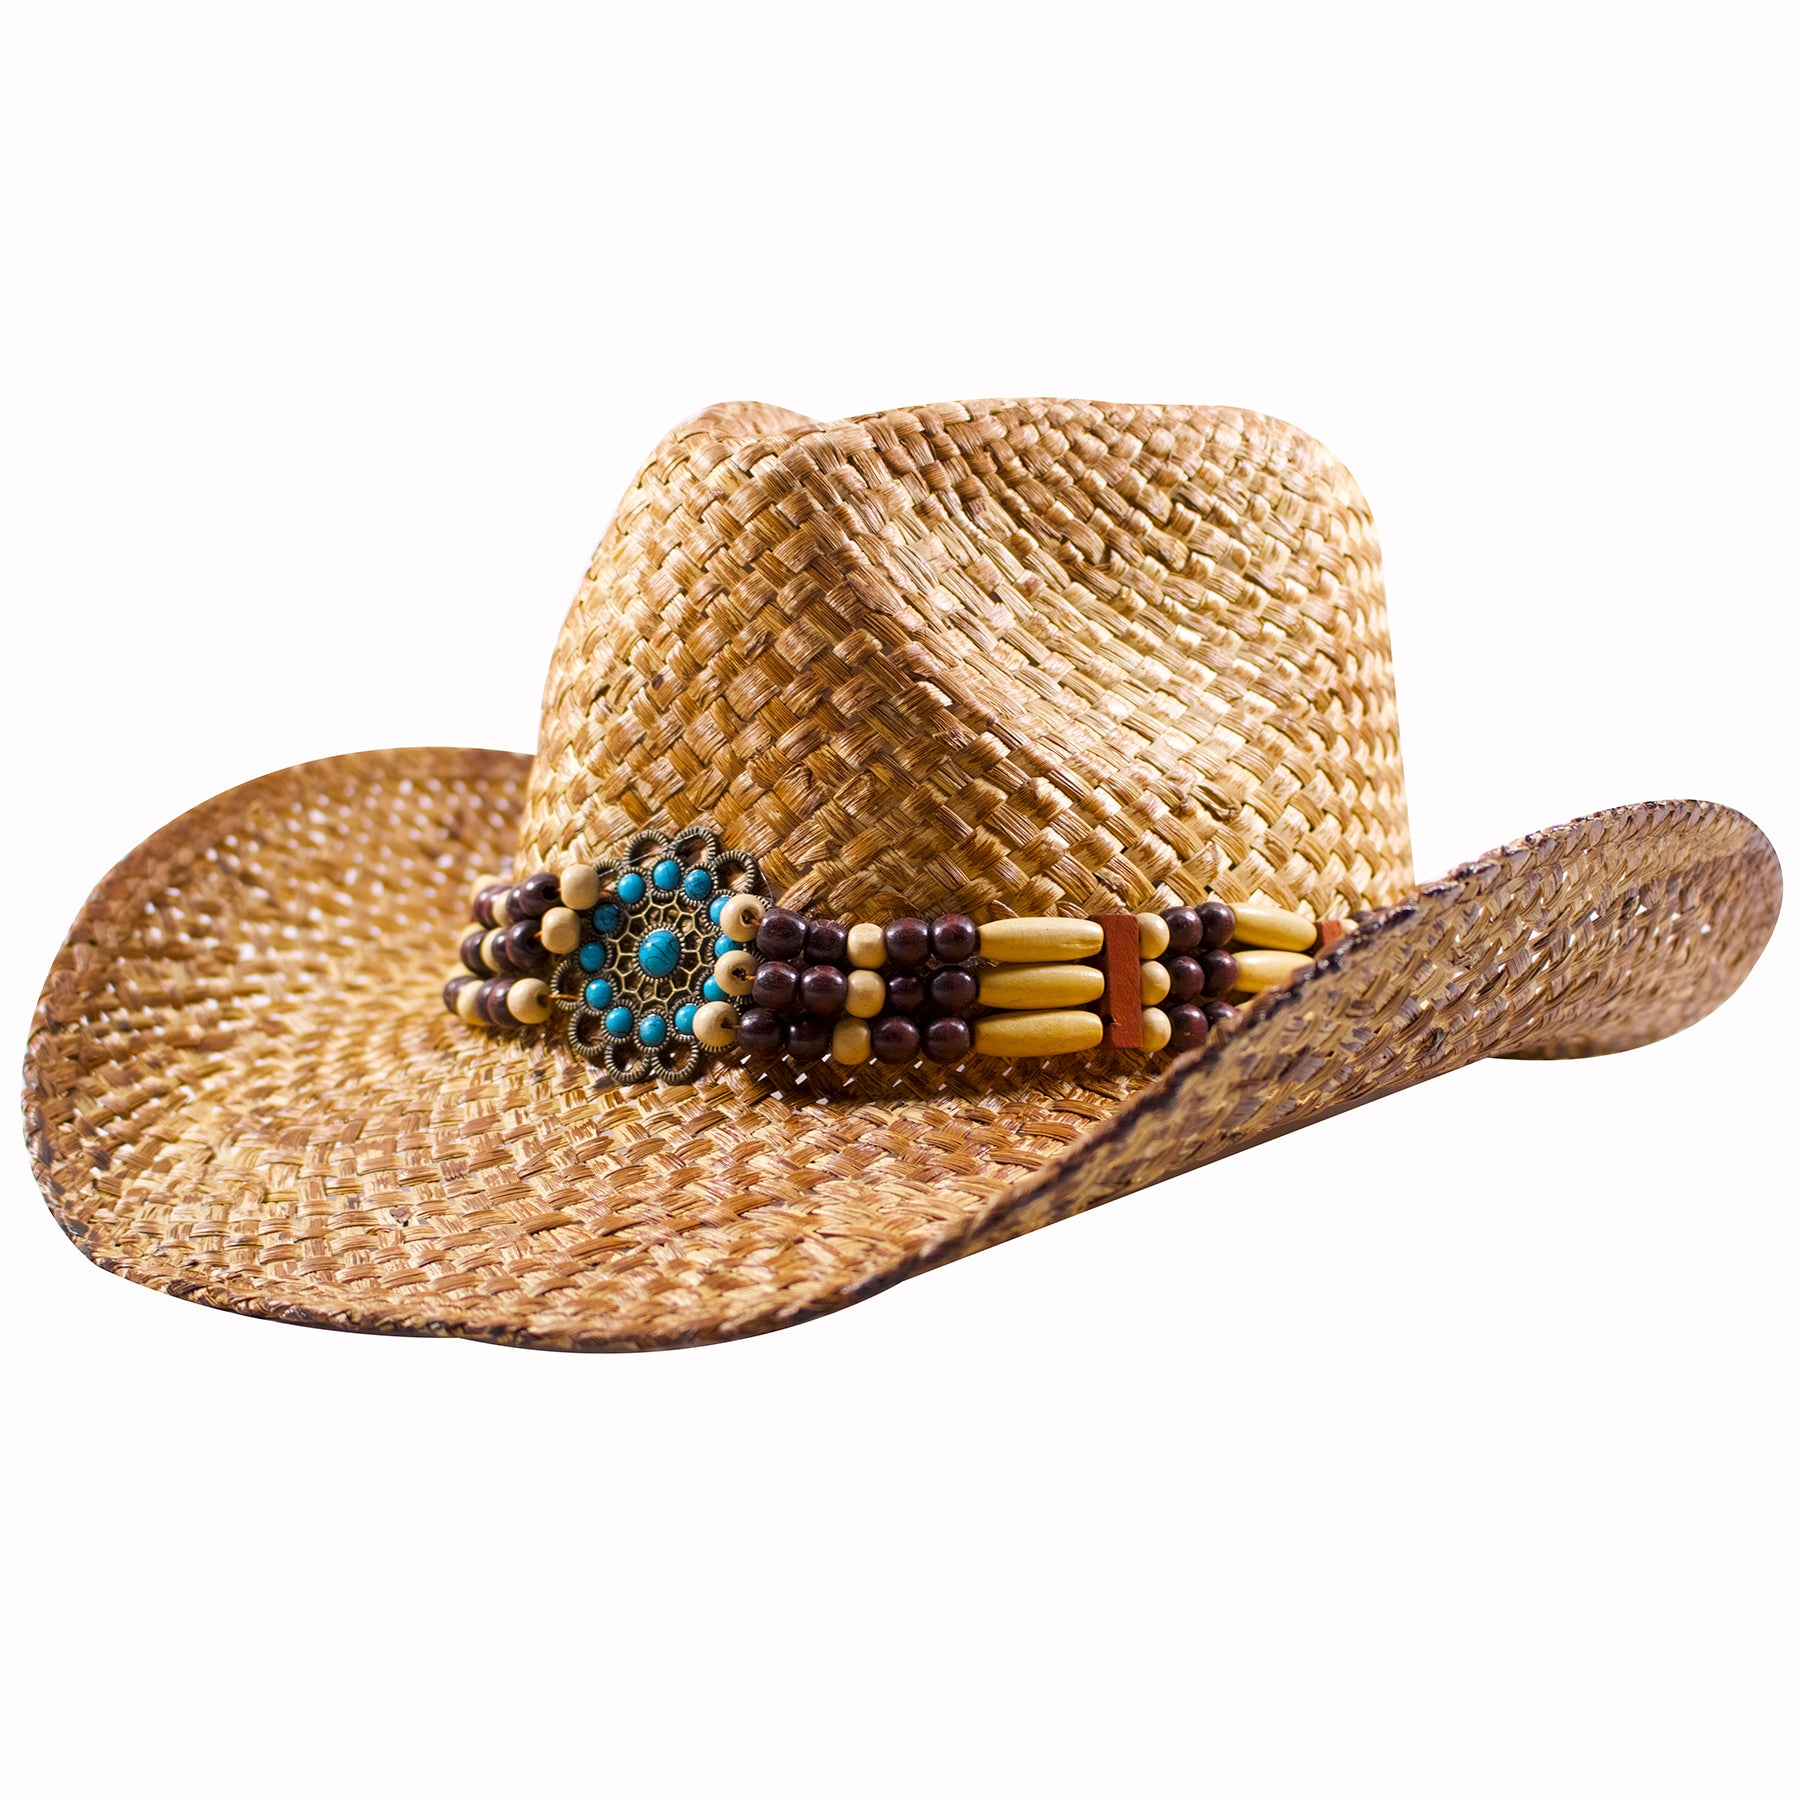 062d9fdf8a9ad ... the beaded band wraps around the base of the tan straw cowboy hat and  contains different ...